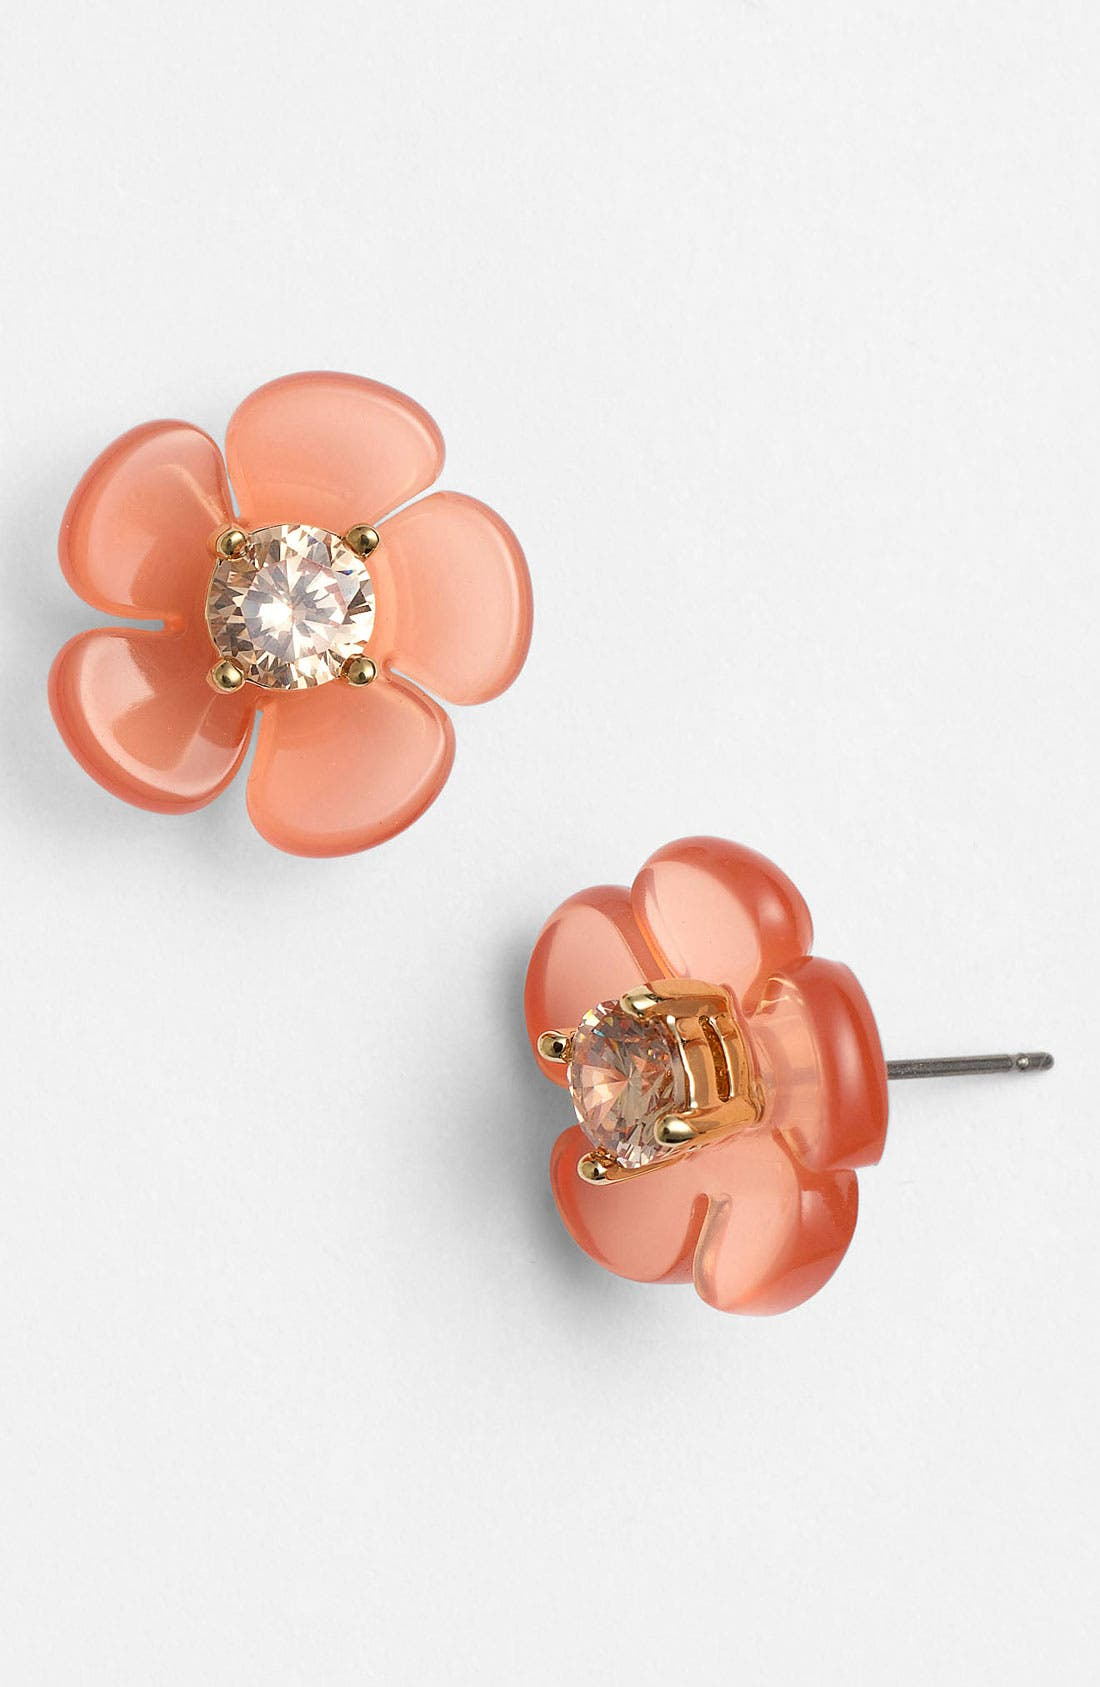 Main Image - Tory Burch 'Flora' Stud Earrings